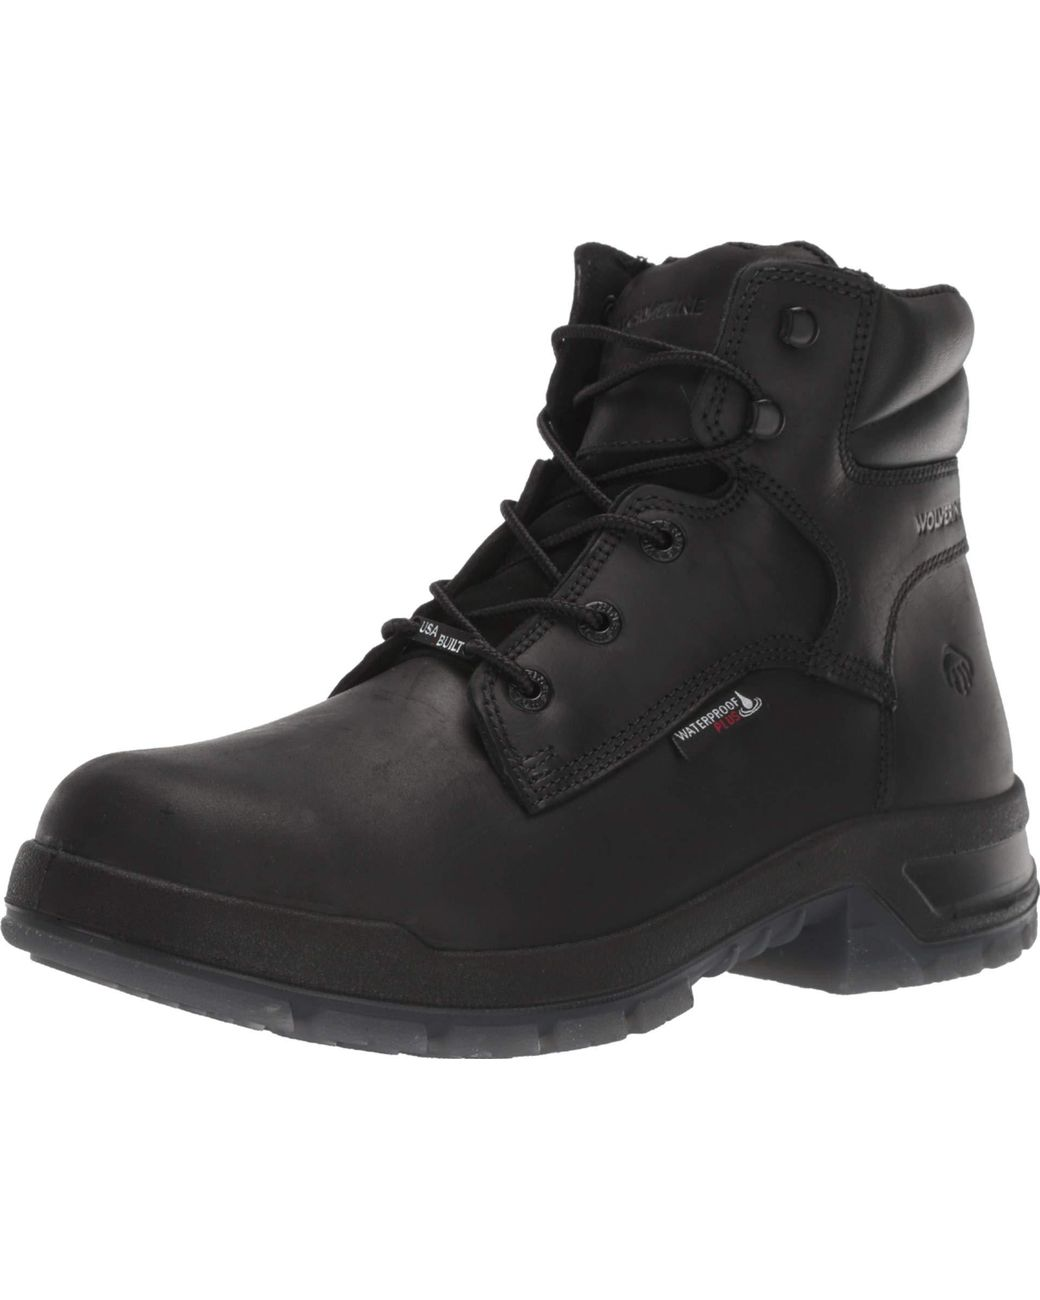 a3432cc0f29 Wolverine - Black Ramparts Carbonmax 6 Boot for Men - Lyst